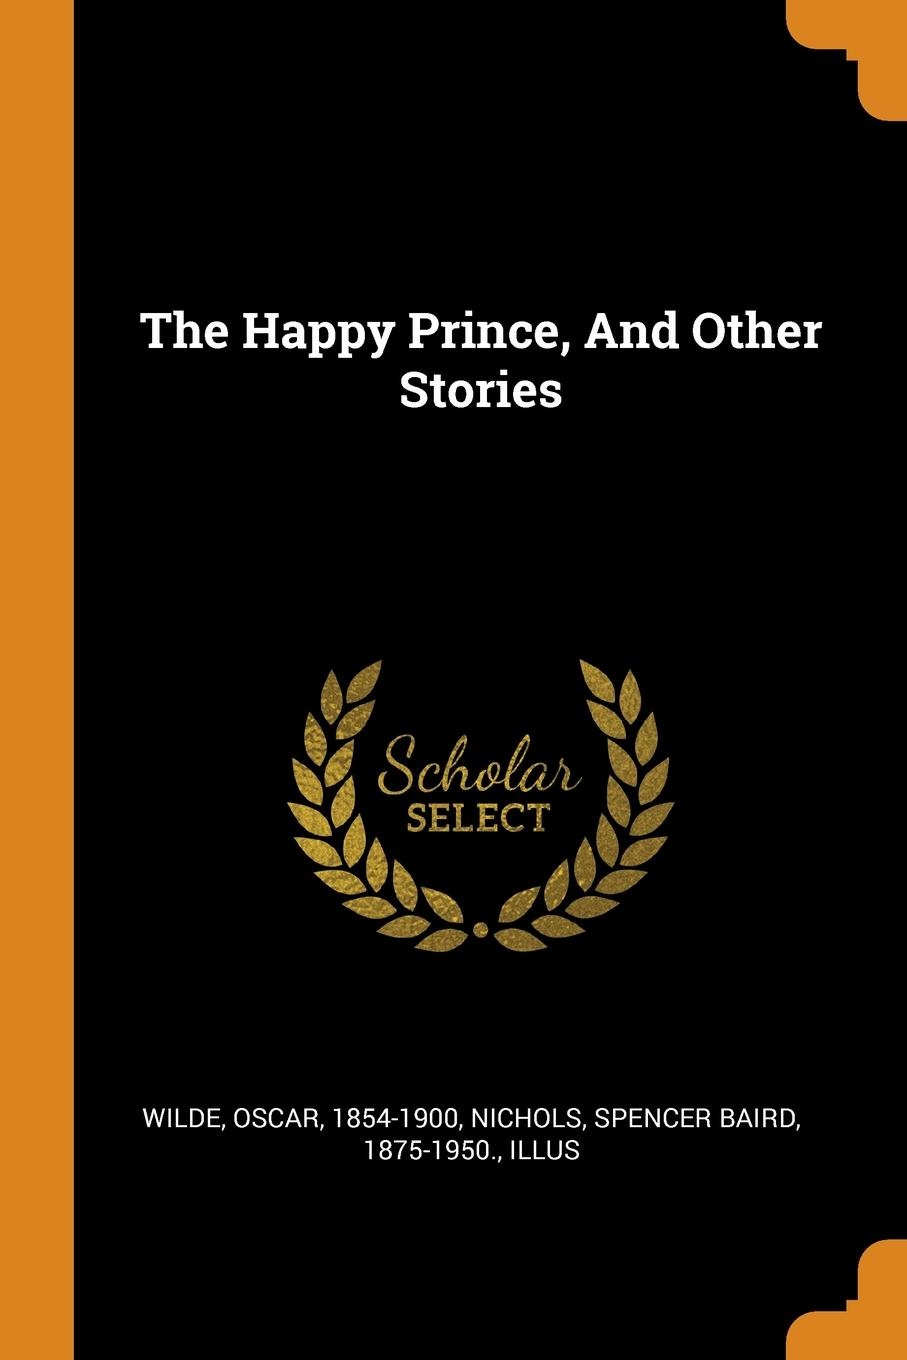 Wilde Oscar 1854-1900 The Happy Prince, And Other Stories oscar wilde the ballad of reading gaol a poetry